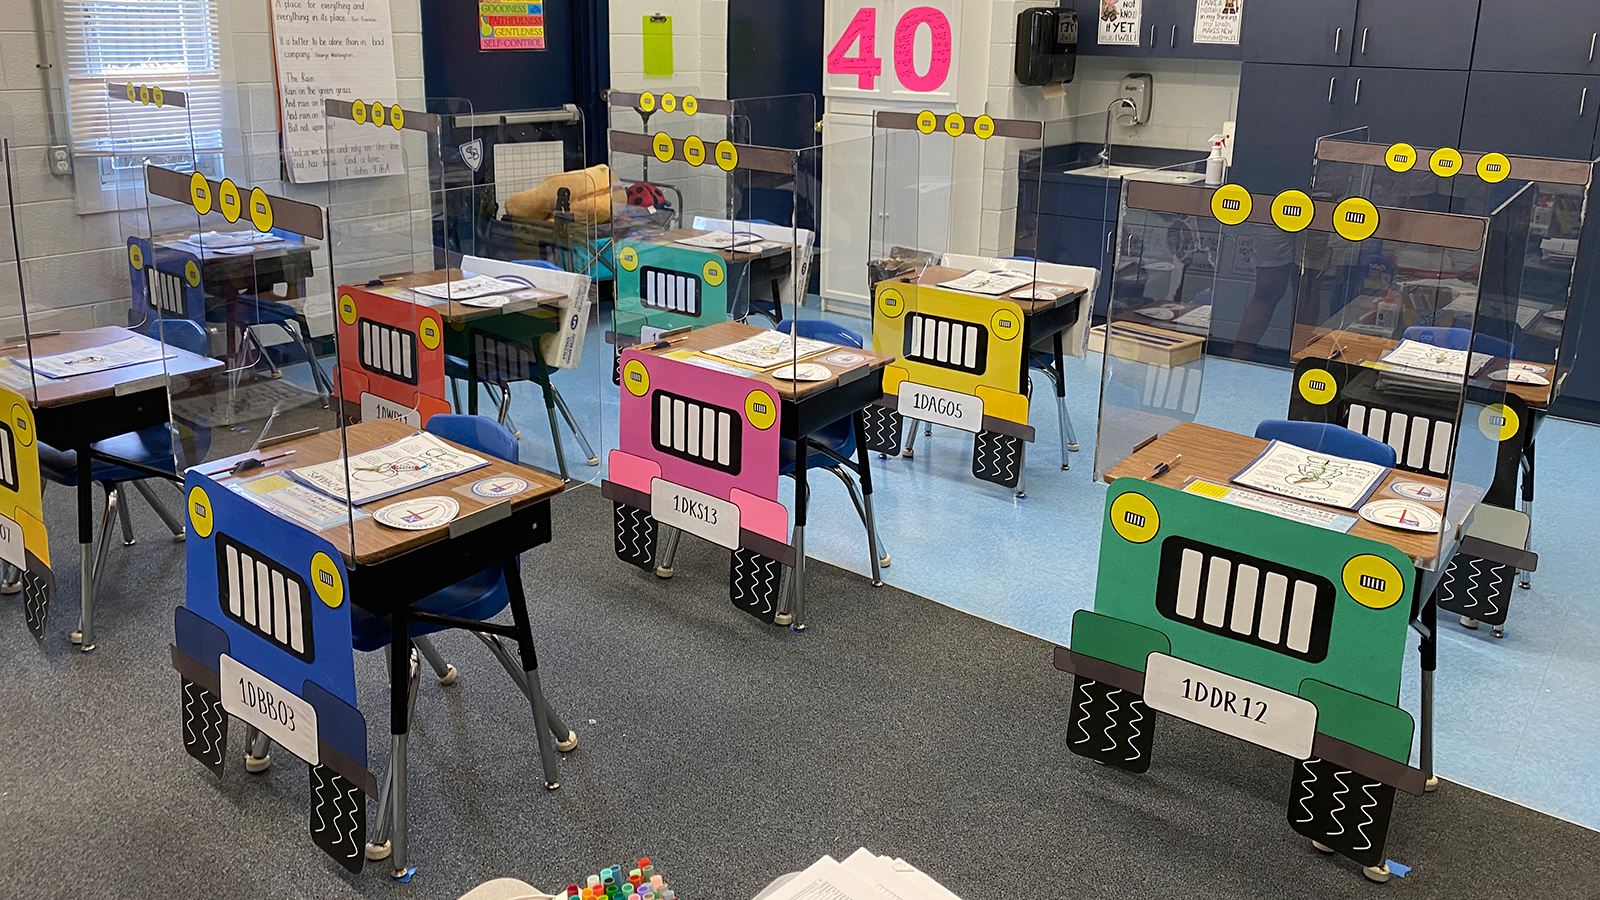 The teachers at St. Barnabas Episcopal School spent a week redesigning classroom desks, which feature construction paper tires, headlights and license plates. (Courtesy Patricia Dovi via CNN)